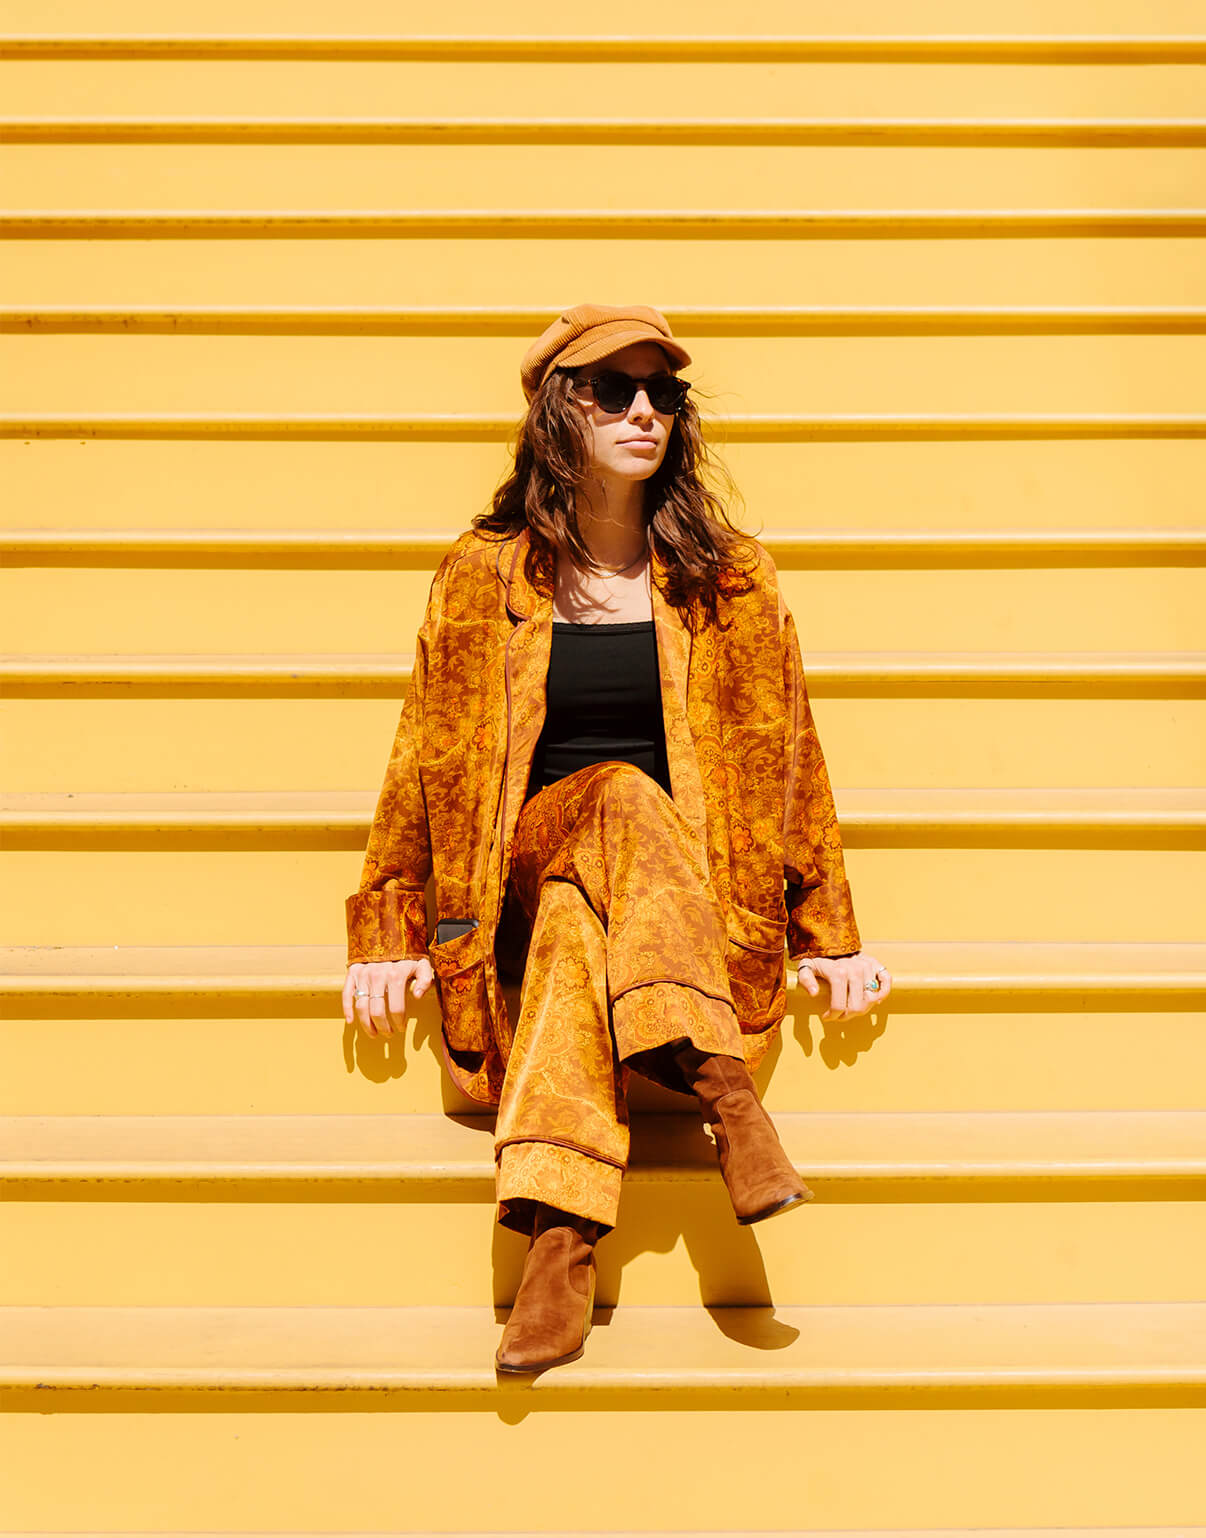 Photo by Brandon Lopez of velvet-clad woman sitting on endless yellow stairs